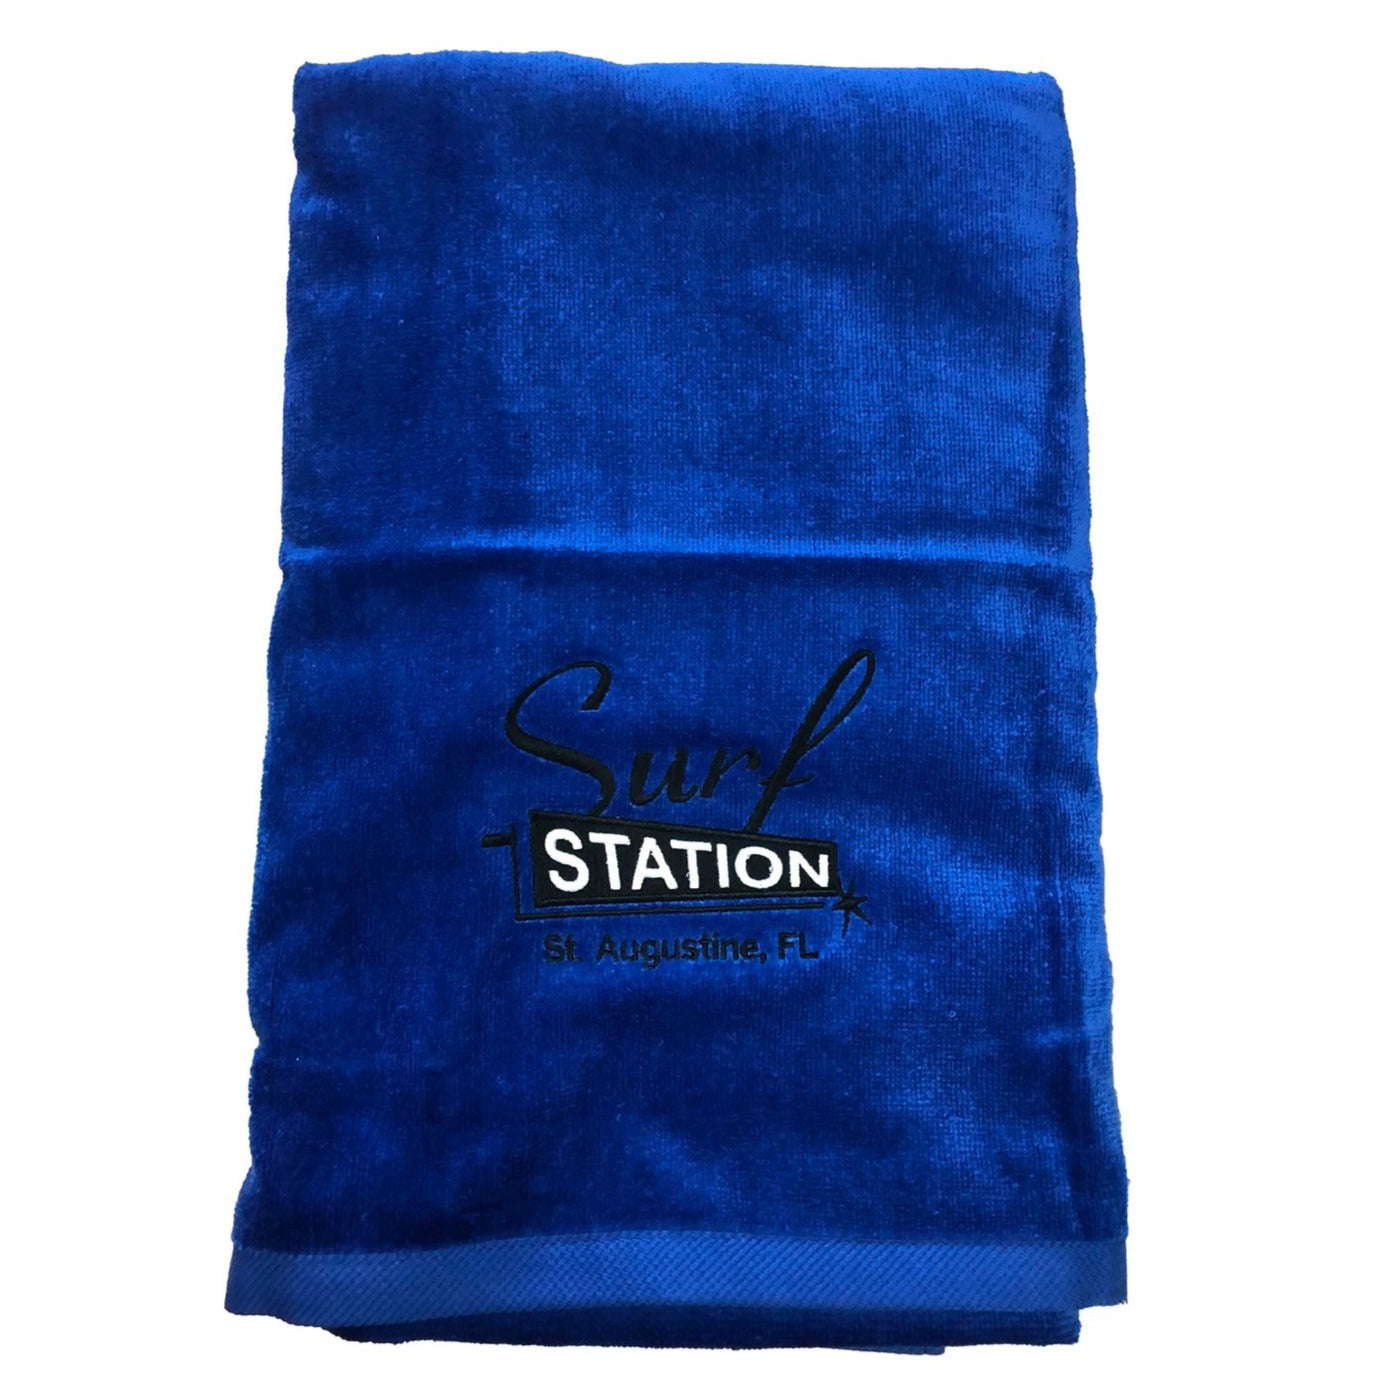 Surf Station Classic Colors Towel - Cobalt